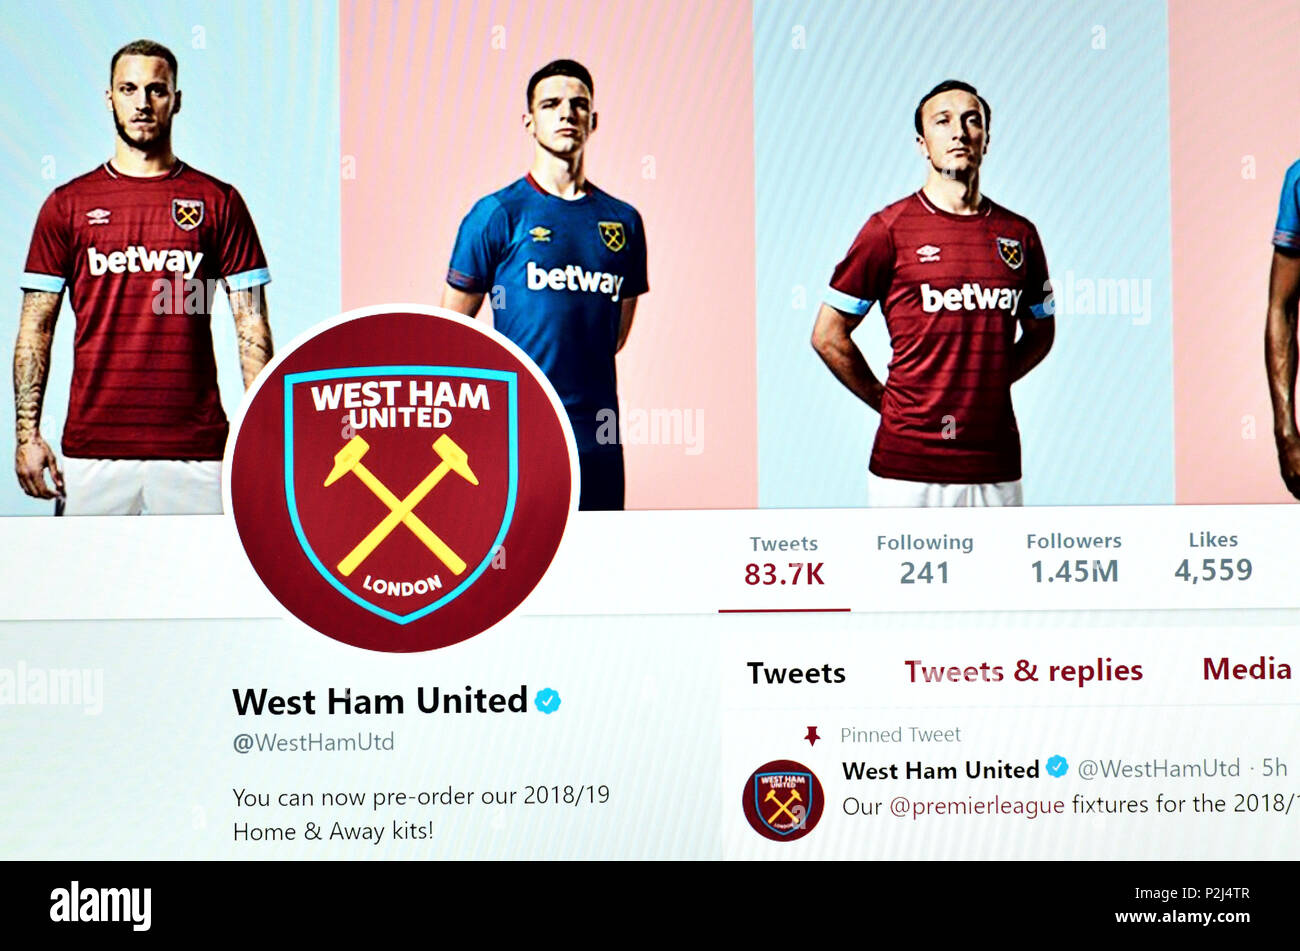 West Ham United FC official Twitter page (2018) - Stock Image